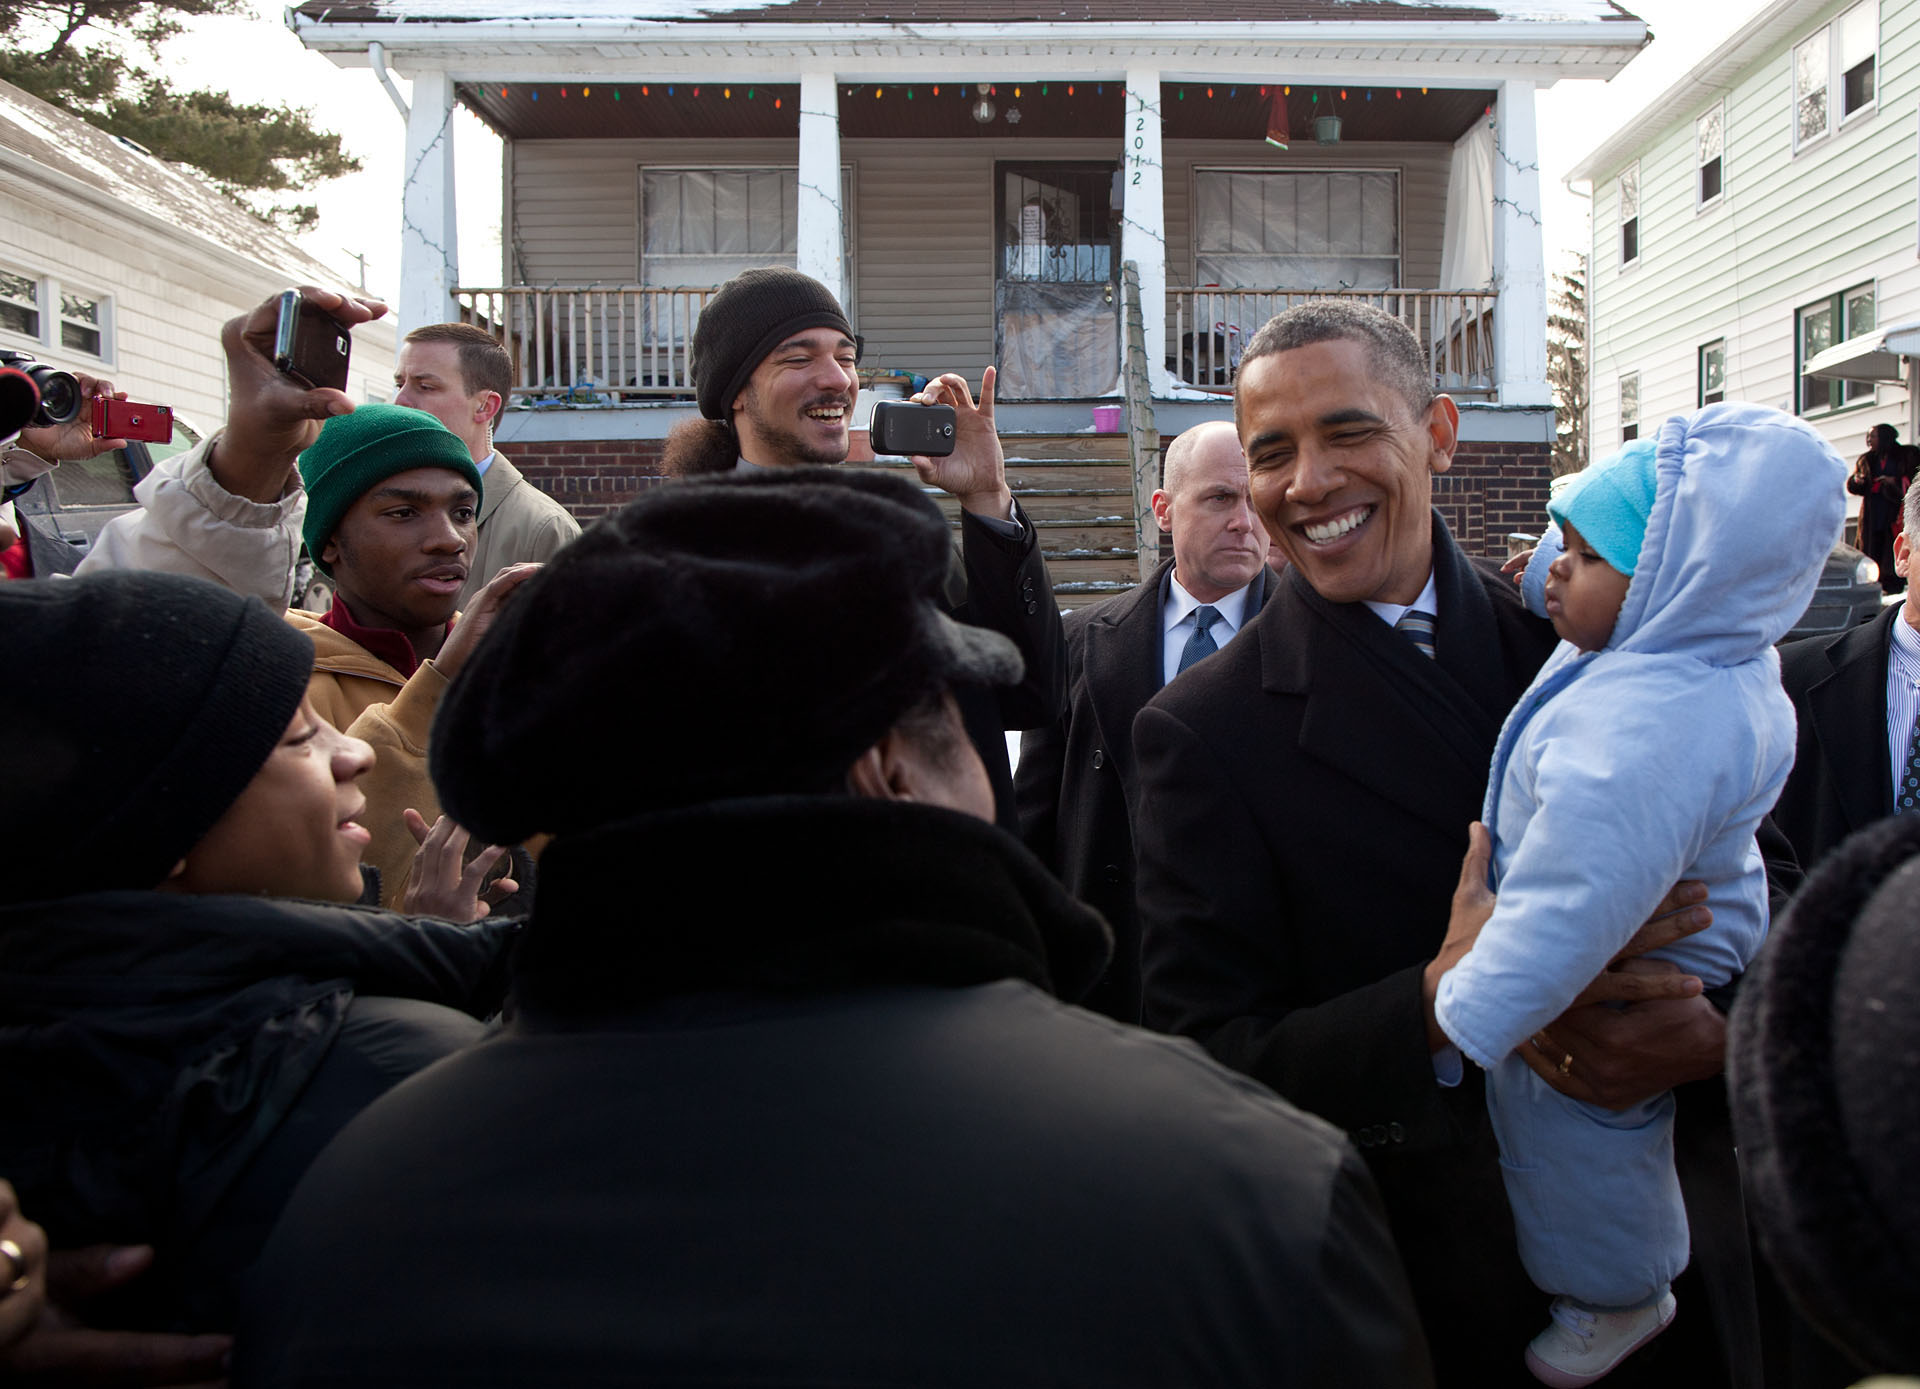 President Obama Outside the Eason Home in Cleveland, Ohio